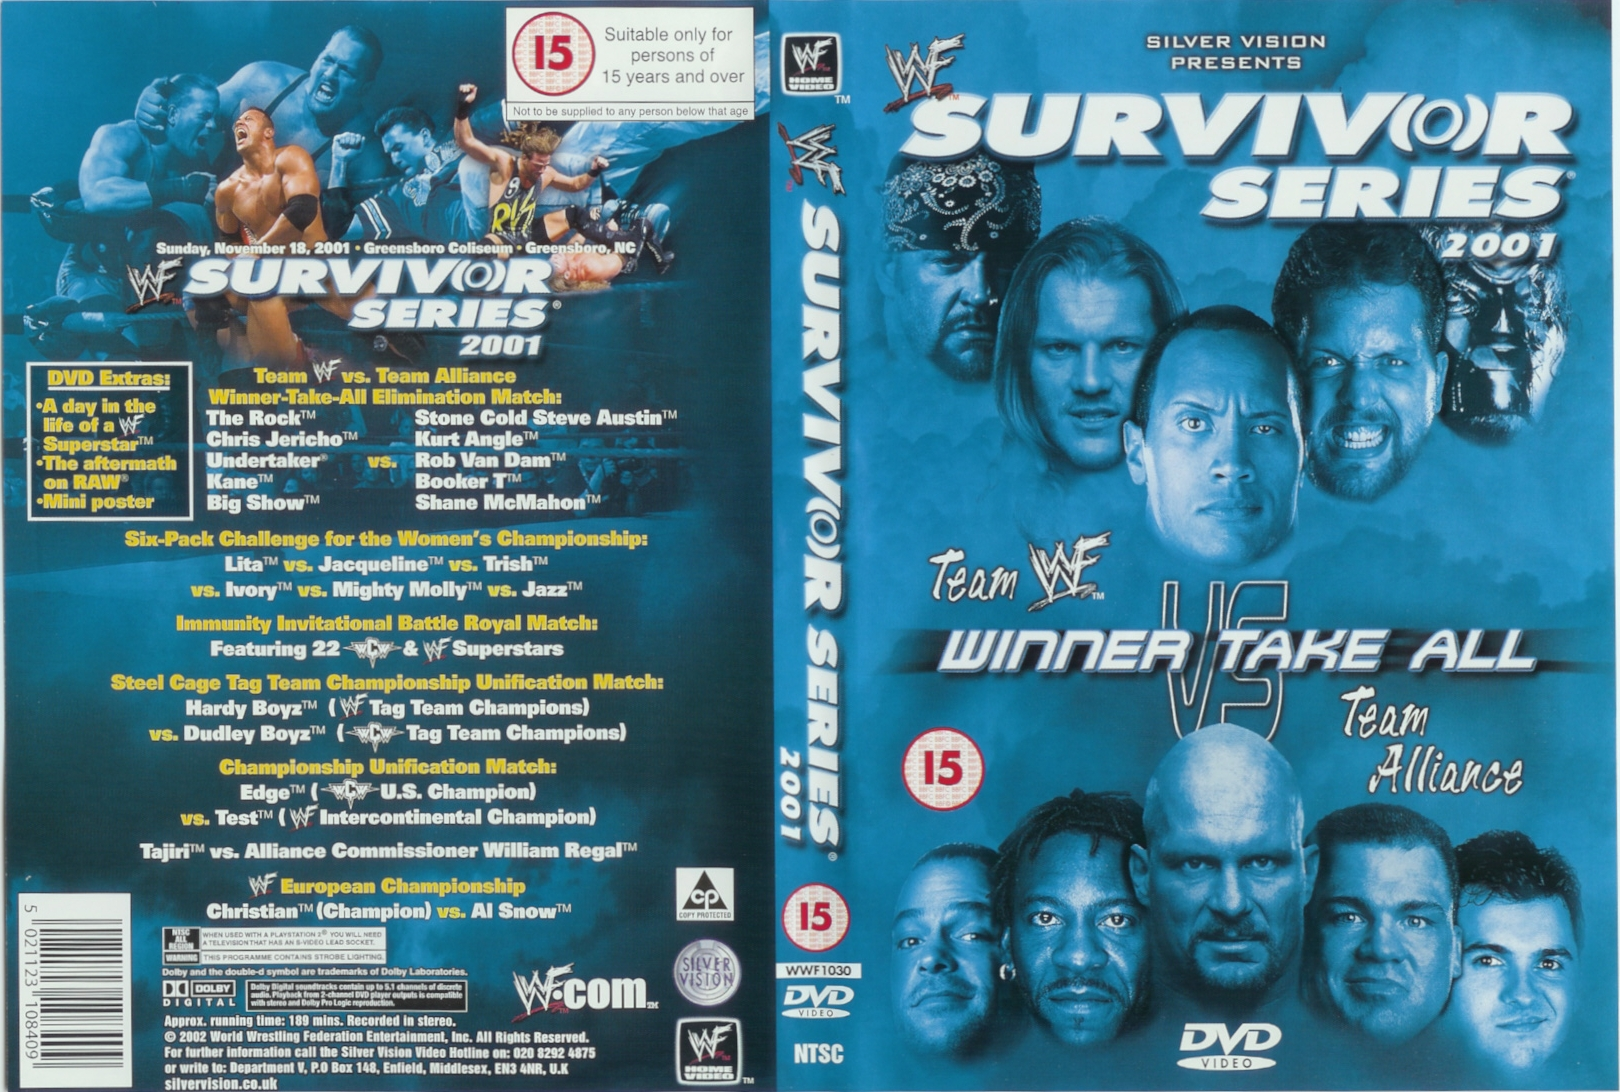 WWE Survior Series 2001